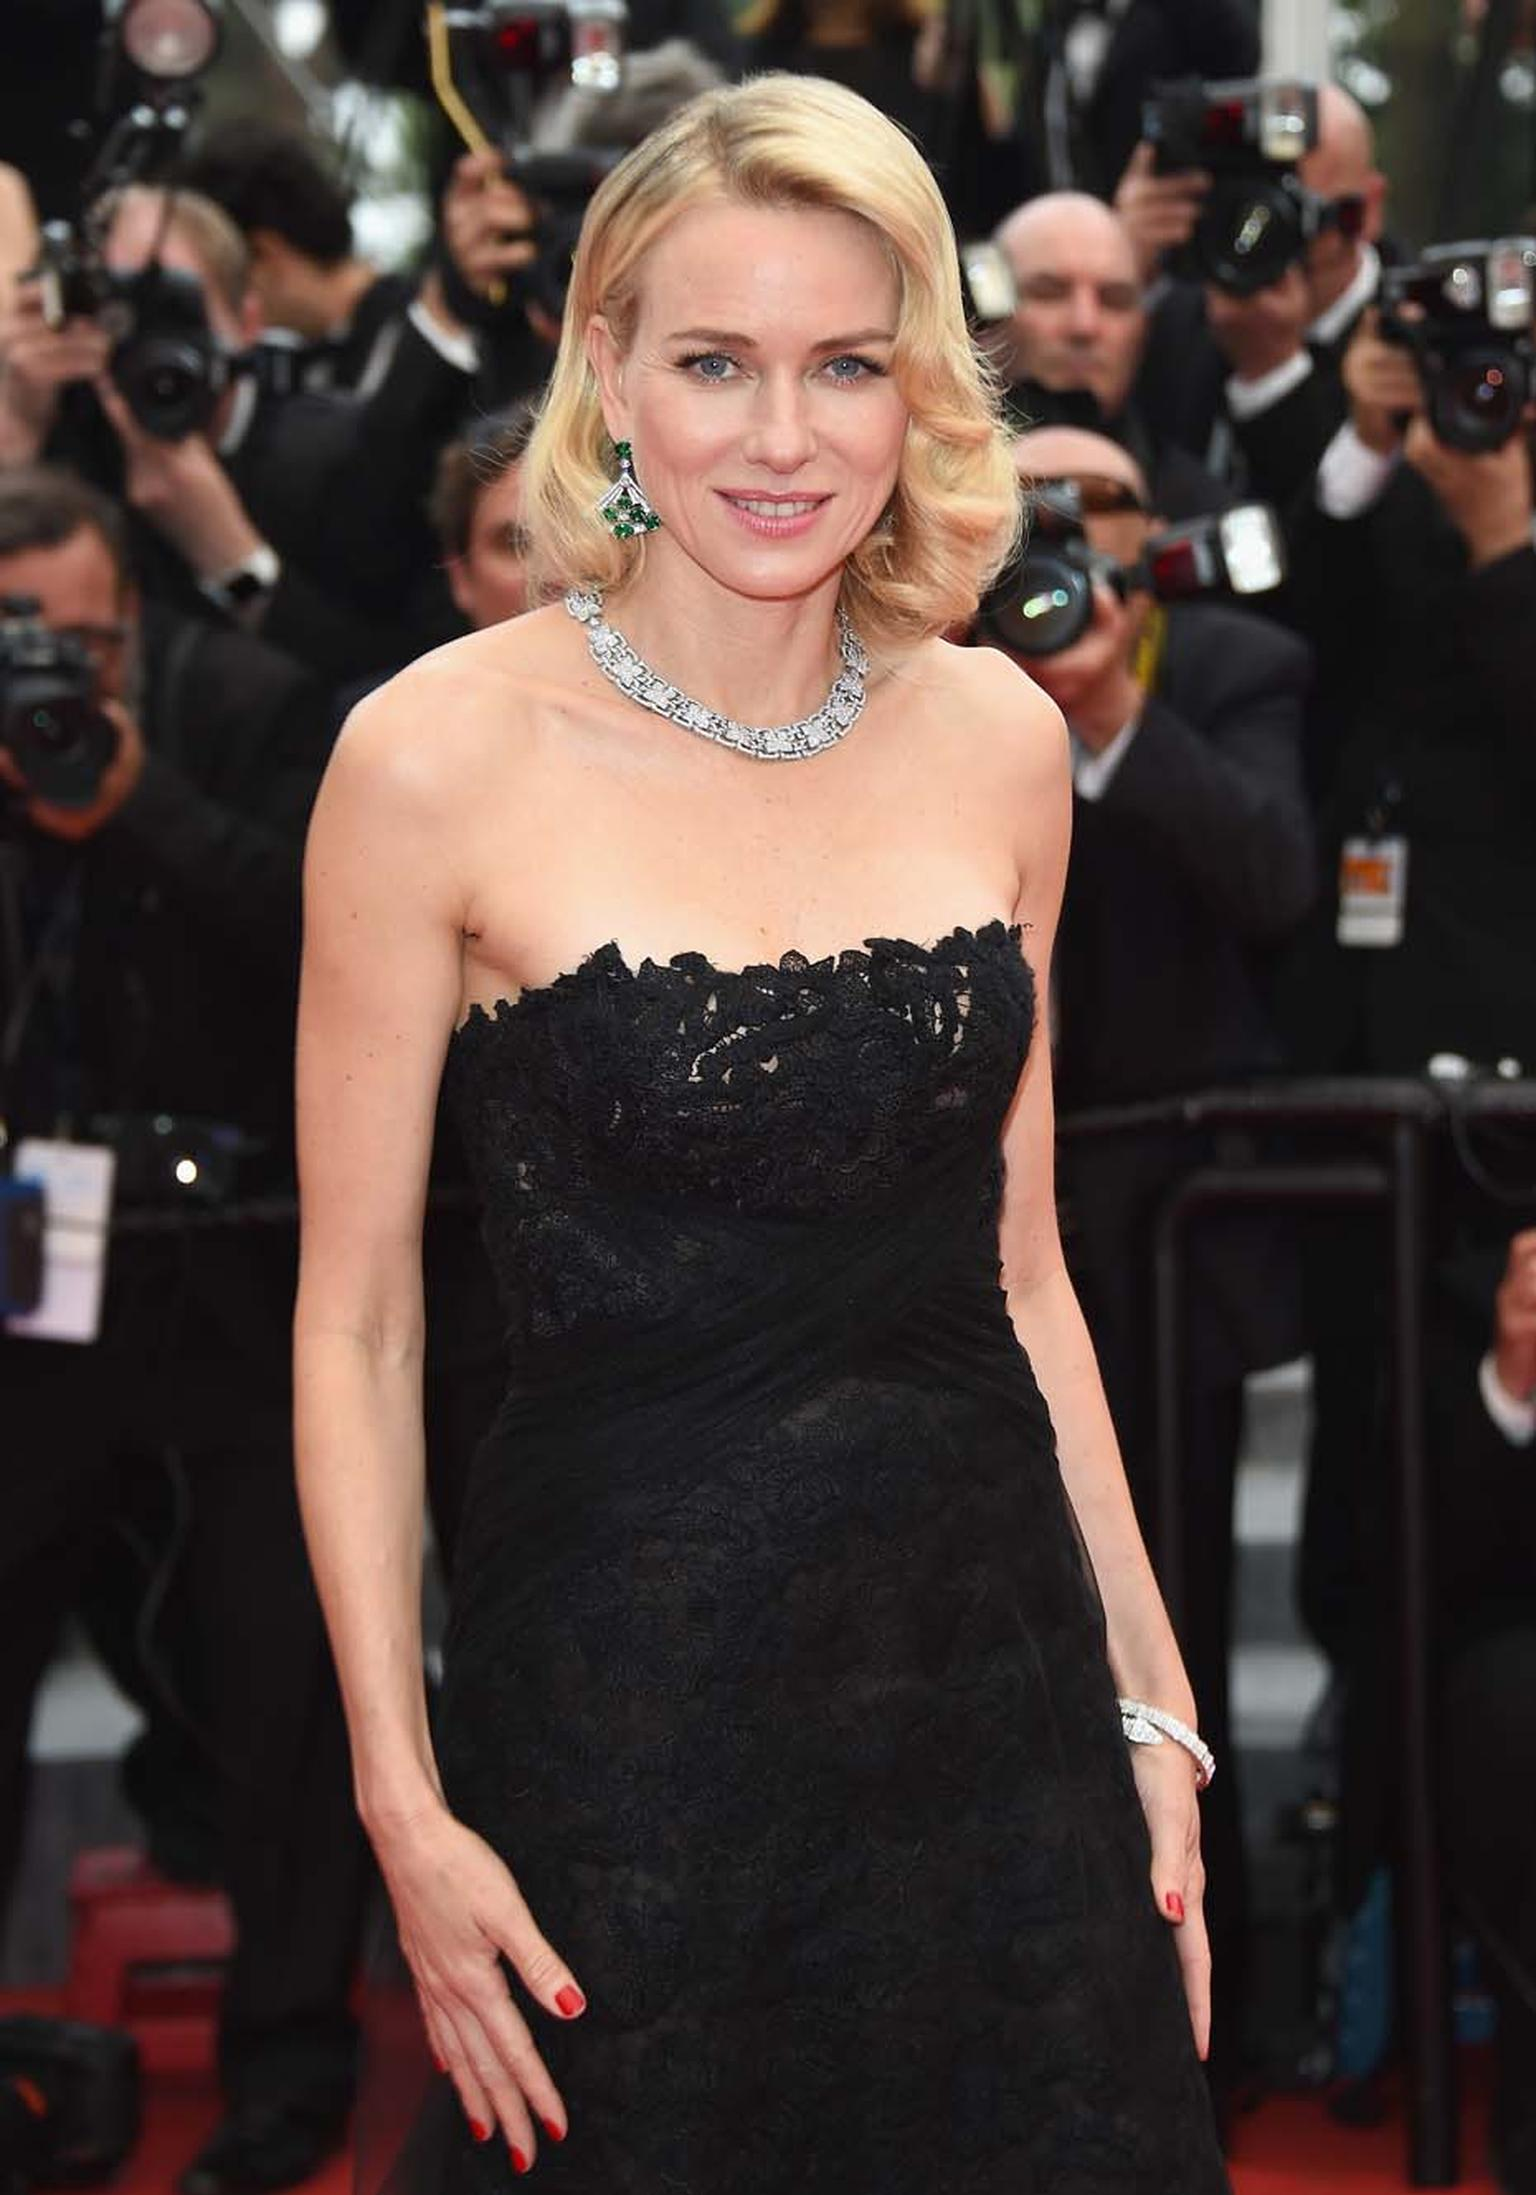 For day two of the Cannes Film Festival, actress Naomi Watts once again wore Bulgari jewellery, this time in the shape of a white gold with round brilliant-cut diamonds and pavé diamond necklace, a pair of high jewellery platinum emerald and diamond earri